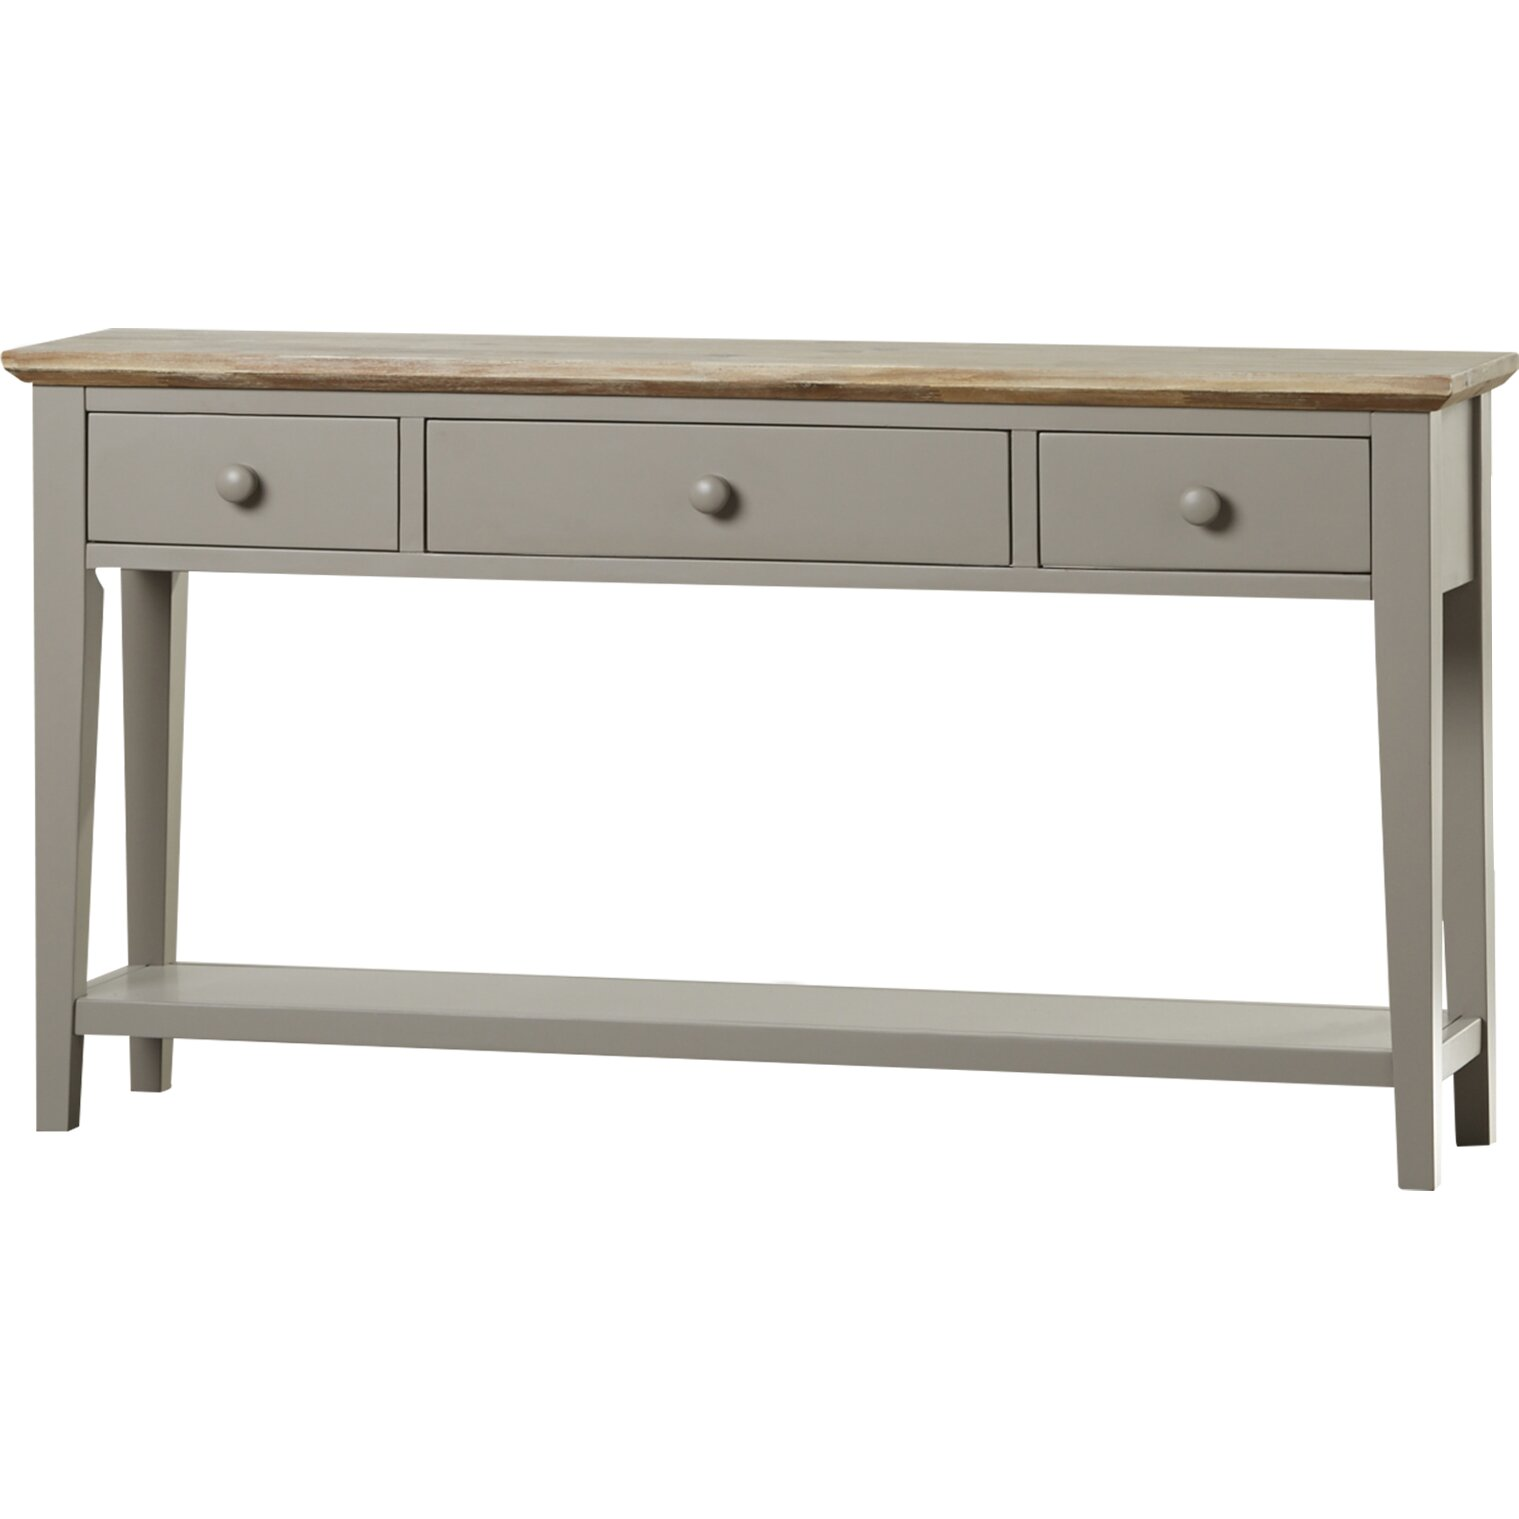 Lily Manor Alban Console Table & Reviews | Wayfair UK